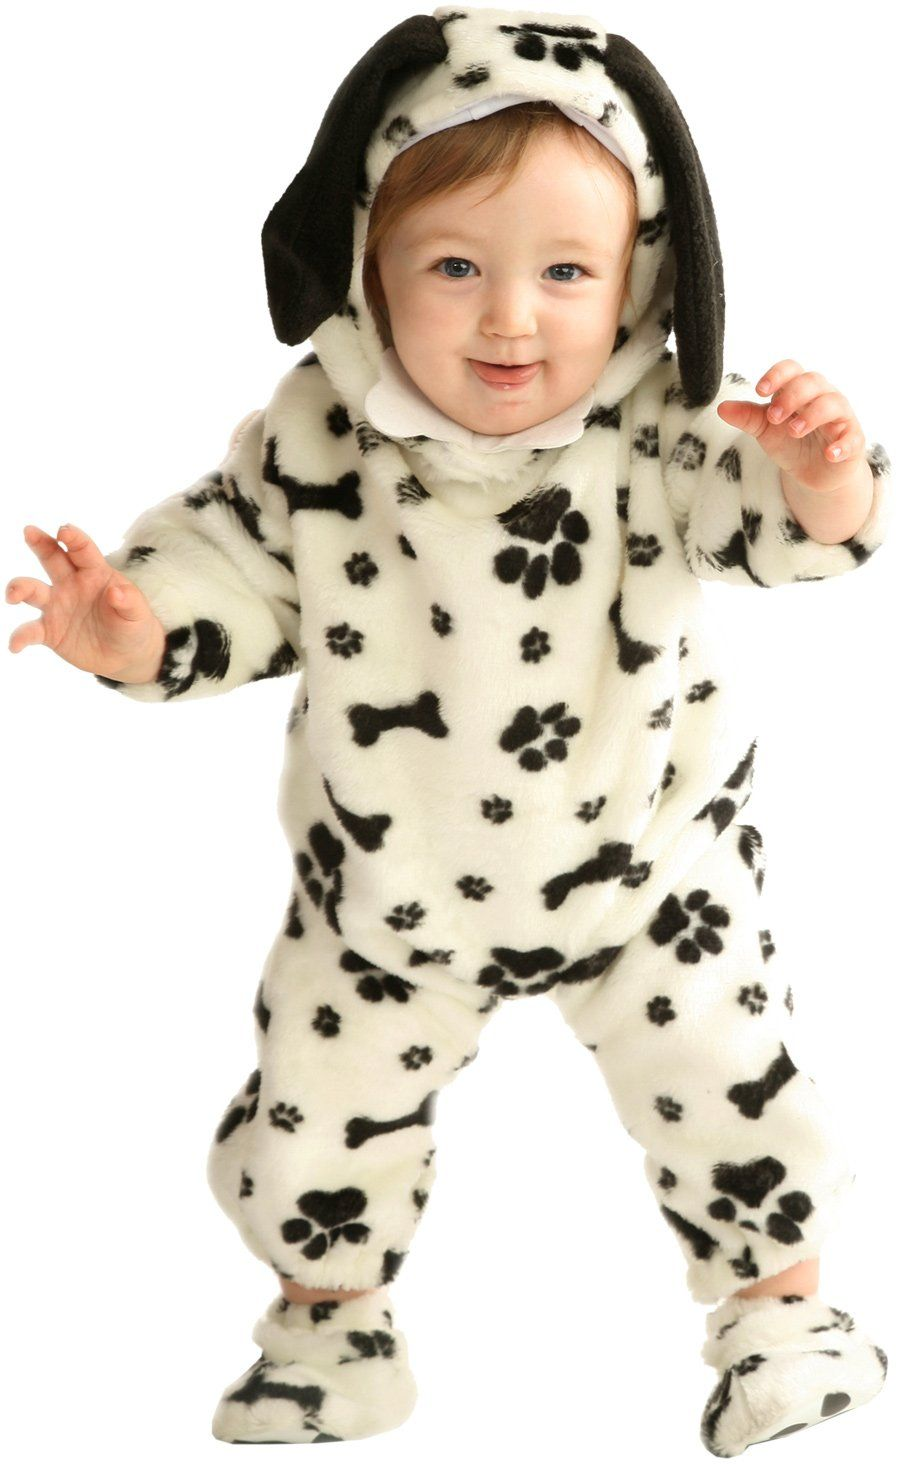 Make a wagon on dalmation stuff puppies and dress Cam as a dalmation puppy...i could go as cruella )  sc 1 st  Pinterest & Make a wagon on dalmation stuff puppies and dress Cam as a dalmation ...